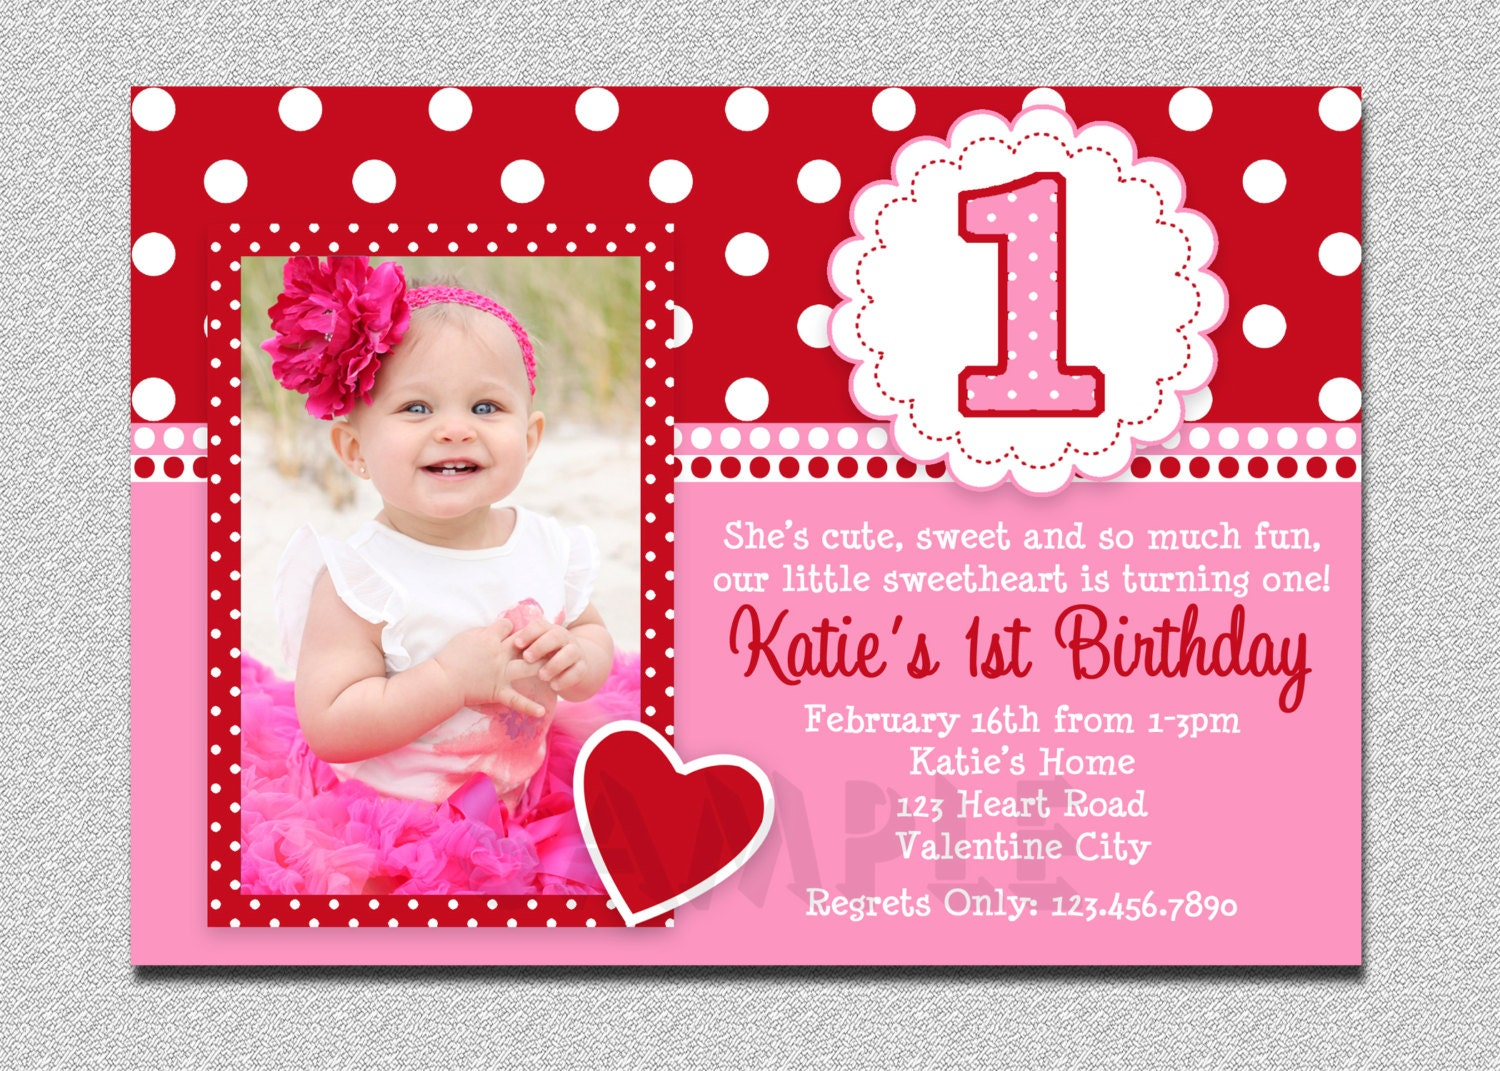 Sample Invitation For 1st Birthday Party hindu wedding invitation – Sample of Birthday Card Invitation